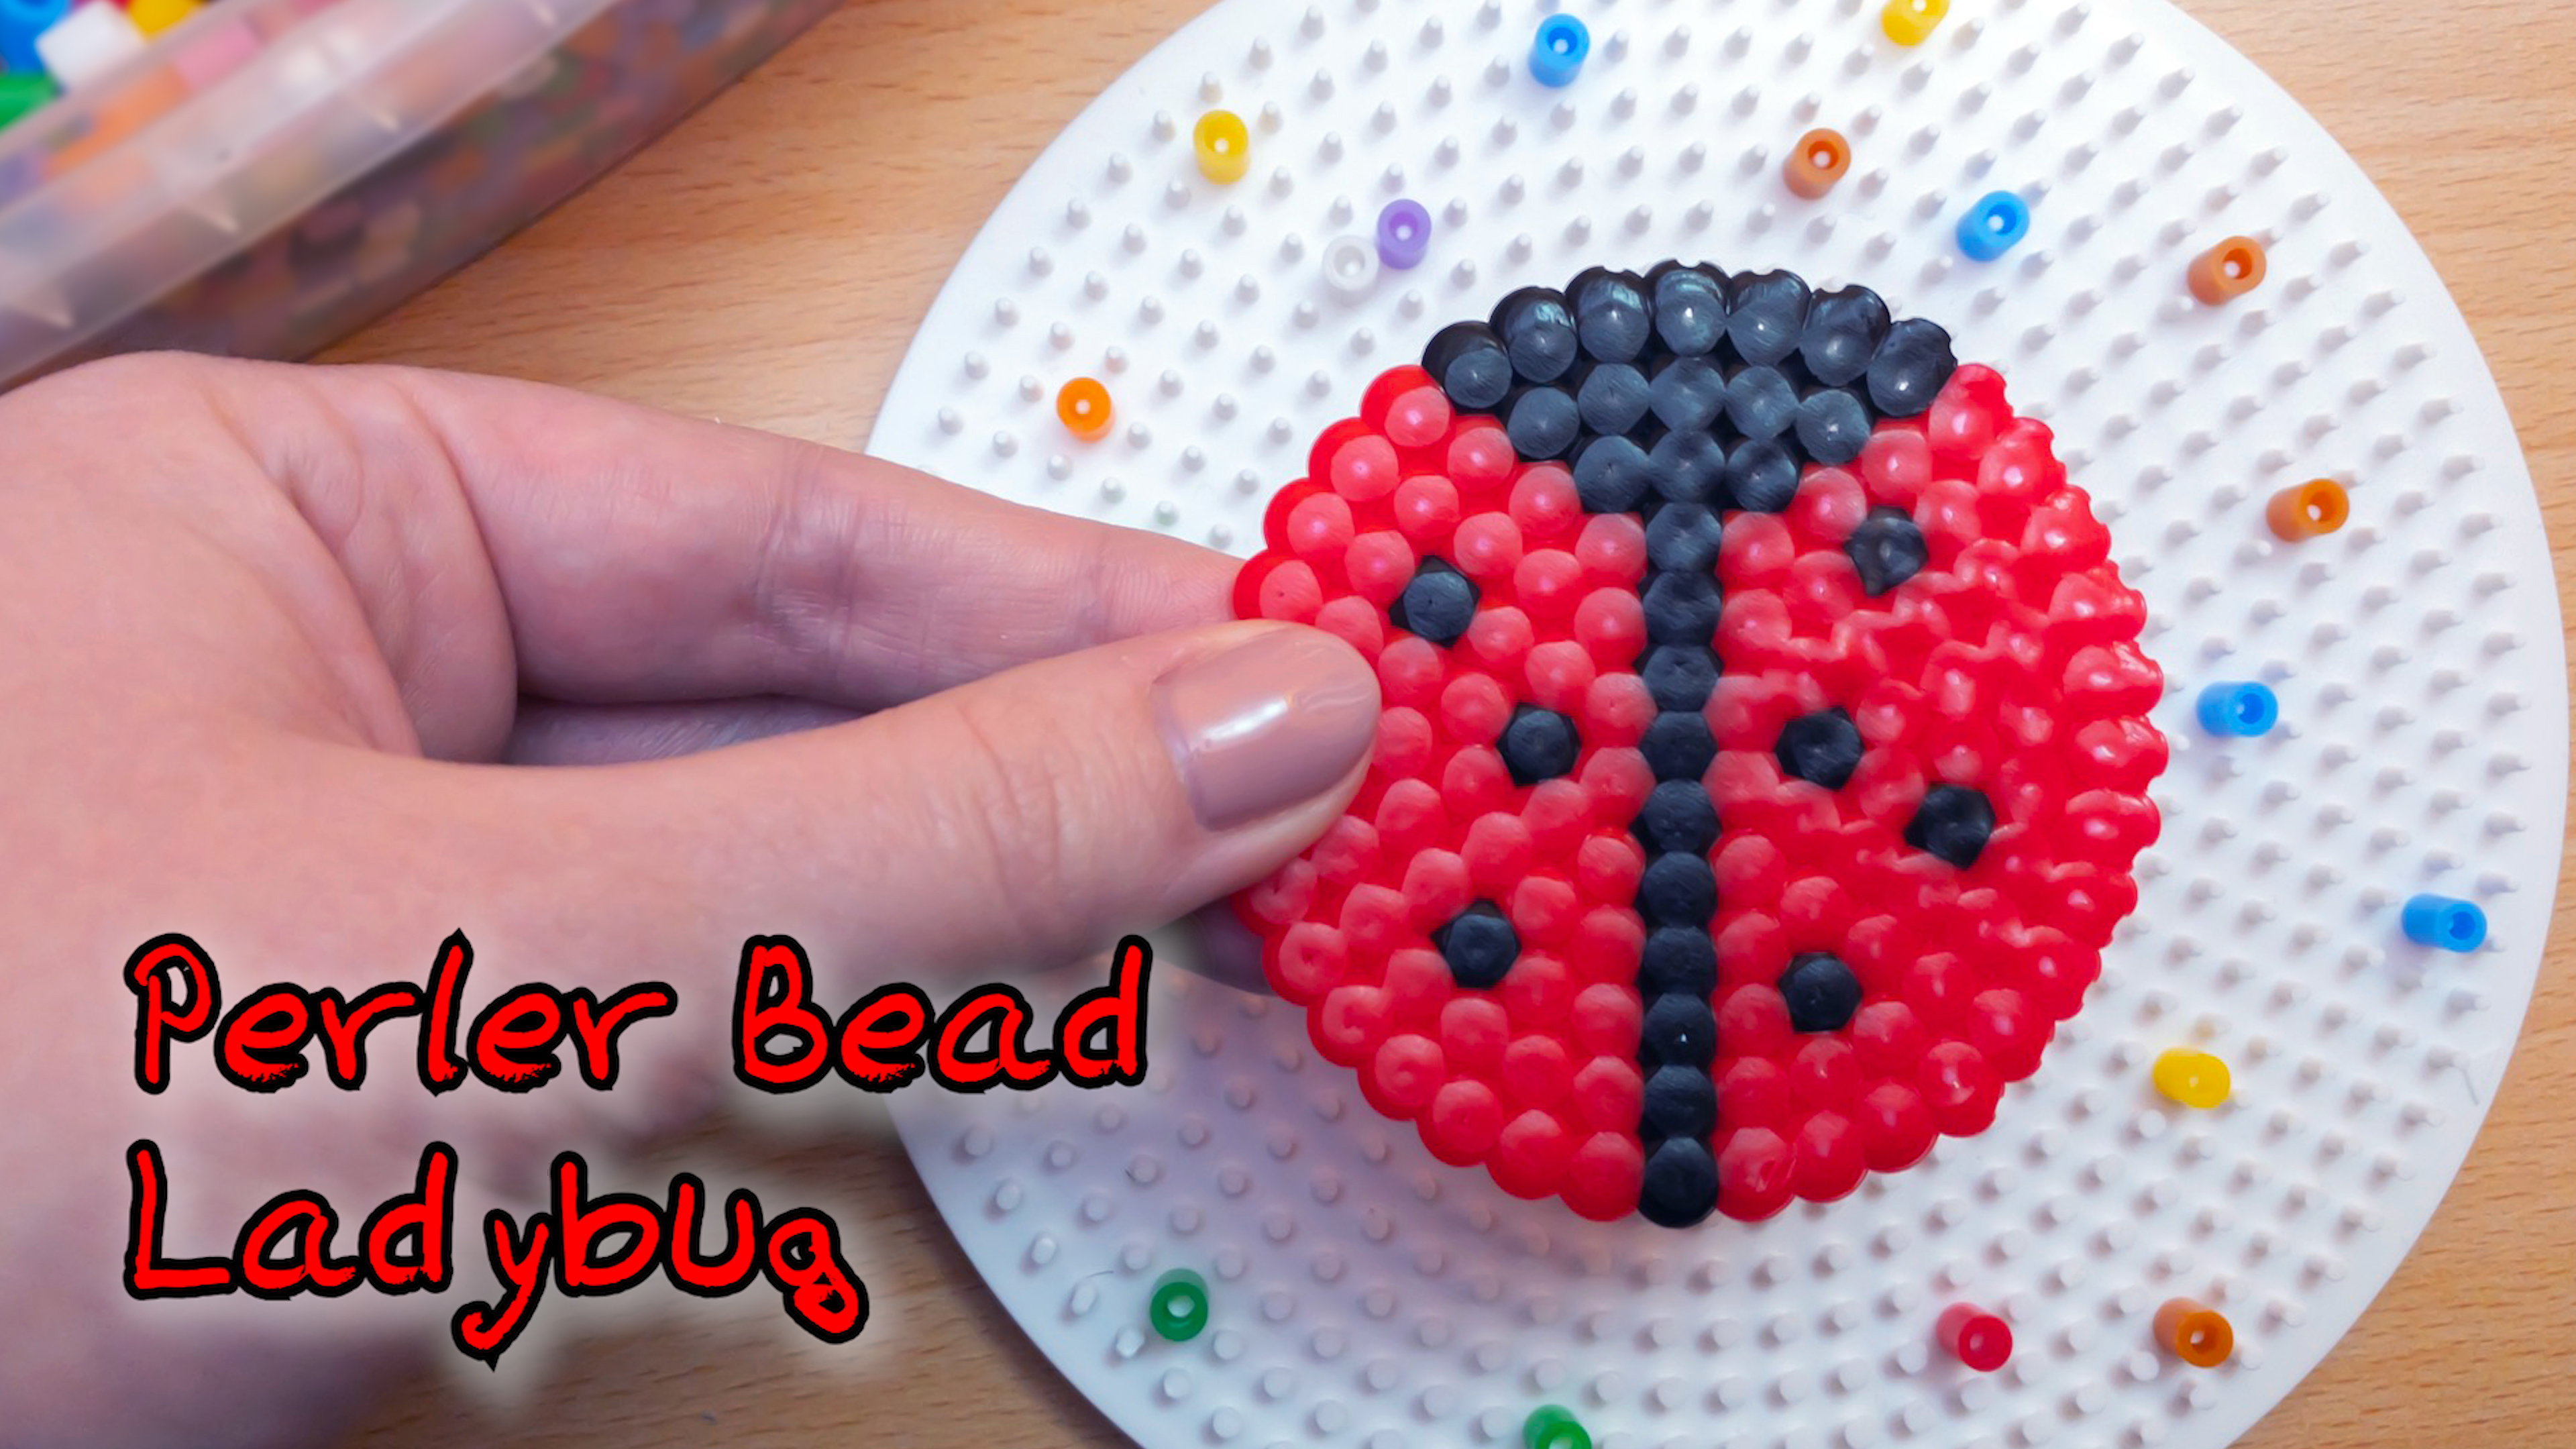 This perler bead ladybug is a fun and adorable project that will help kids develop fine motor skills, patience and artistic design!